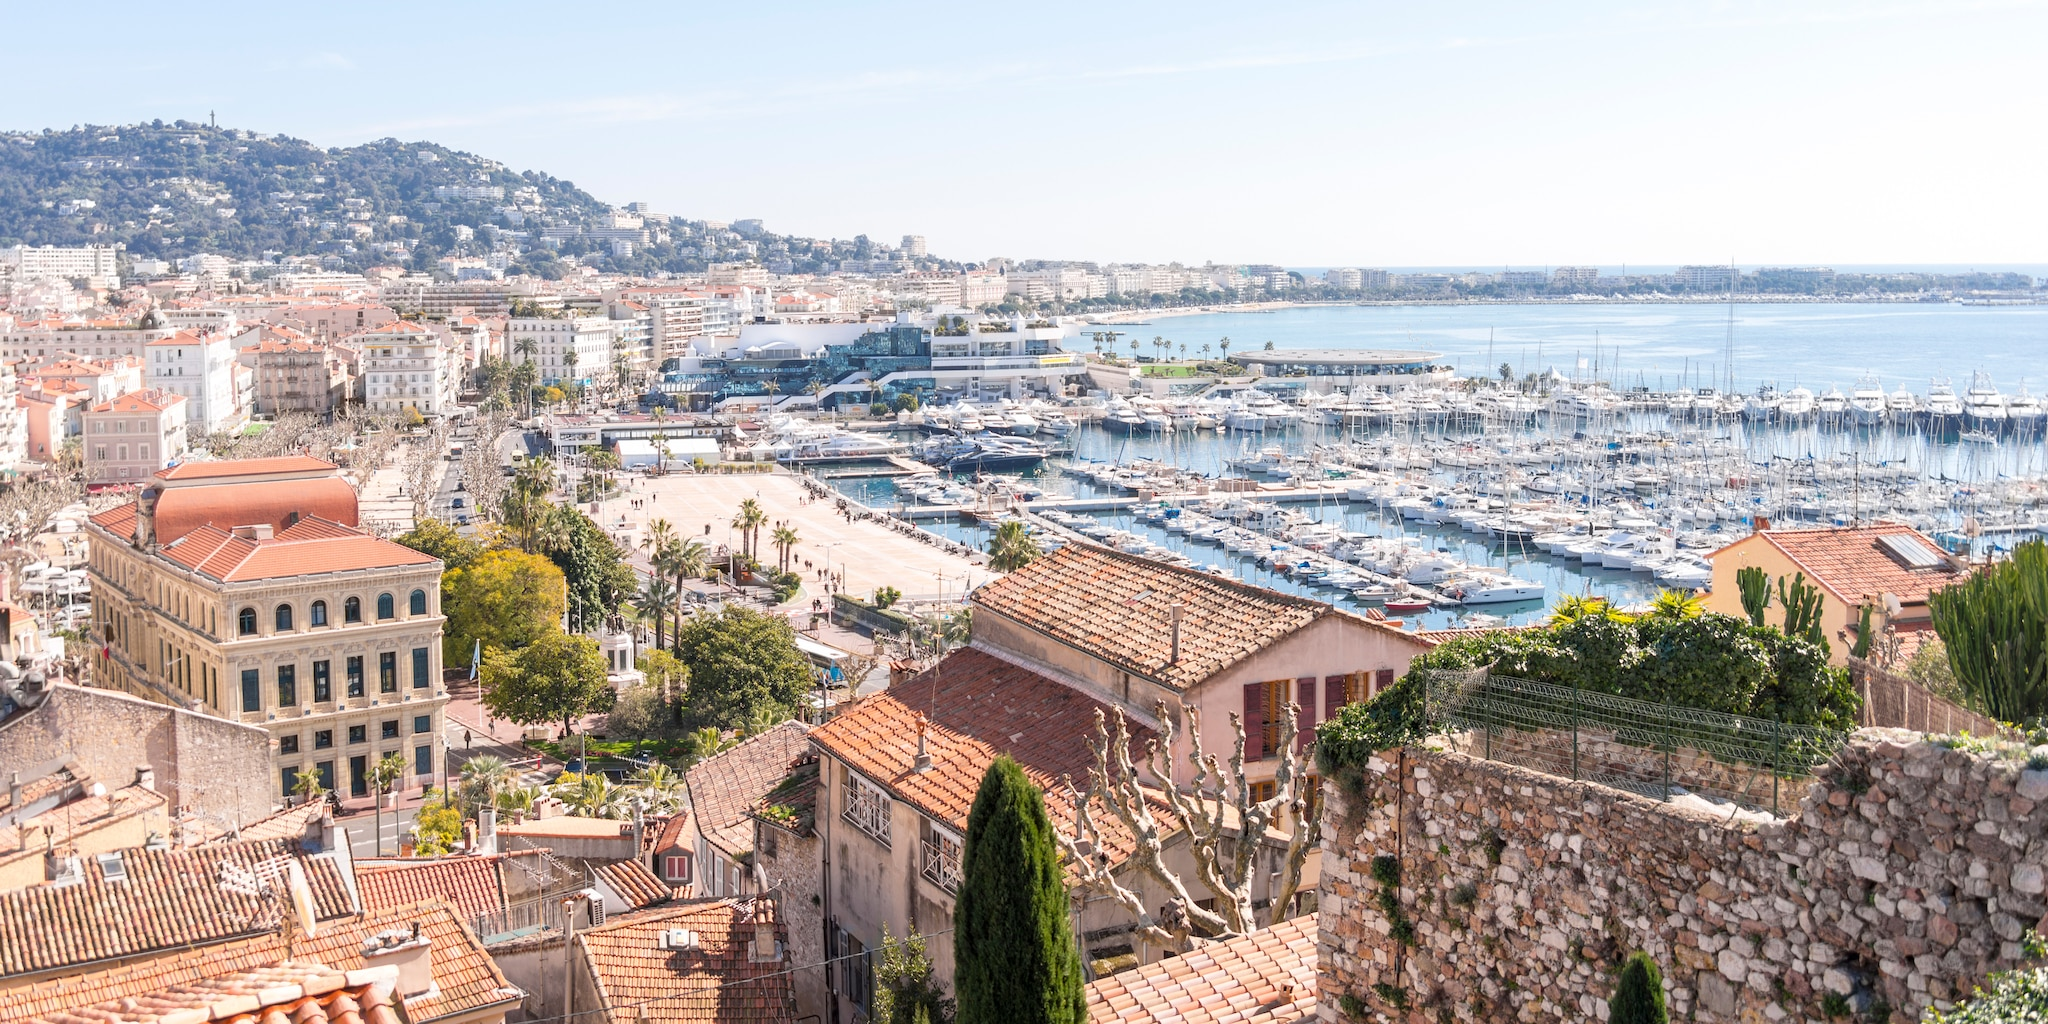 Boats docked in the Cannes Harbor, with multi storied, tile roof buildings hugging the shore